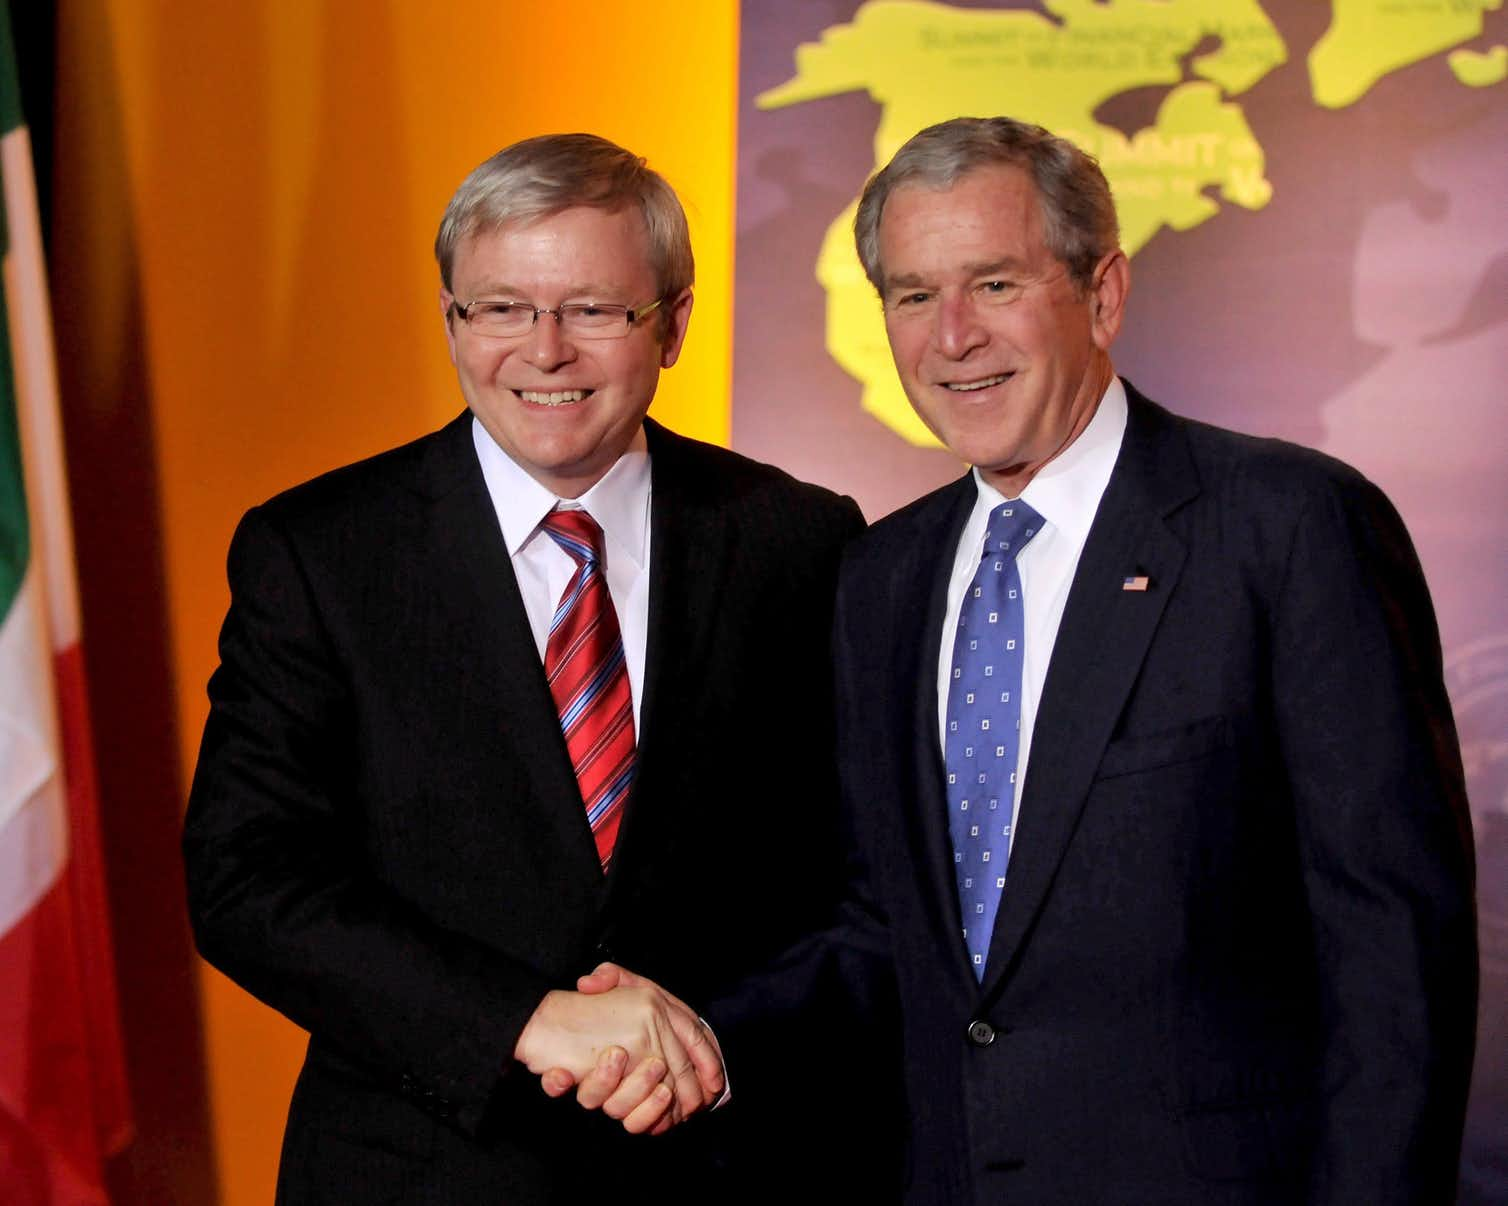 Australian Prime Minister Kevin Rudd meets with Us President George W Bush at the first G20 summit in Washington in 2008. AAP/EPA/Ron Sachs/pool